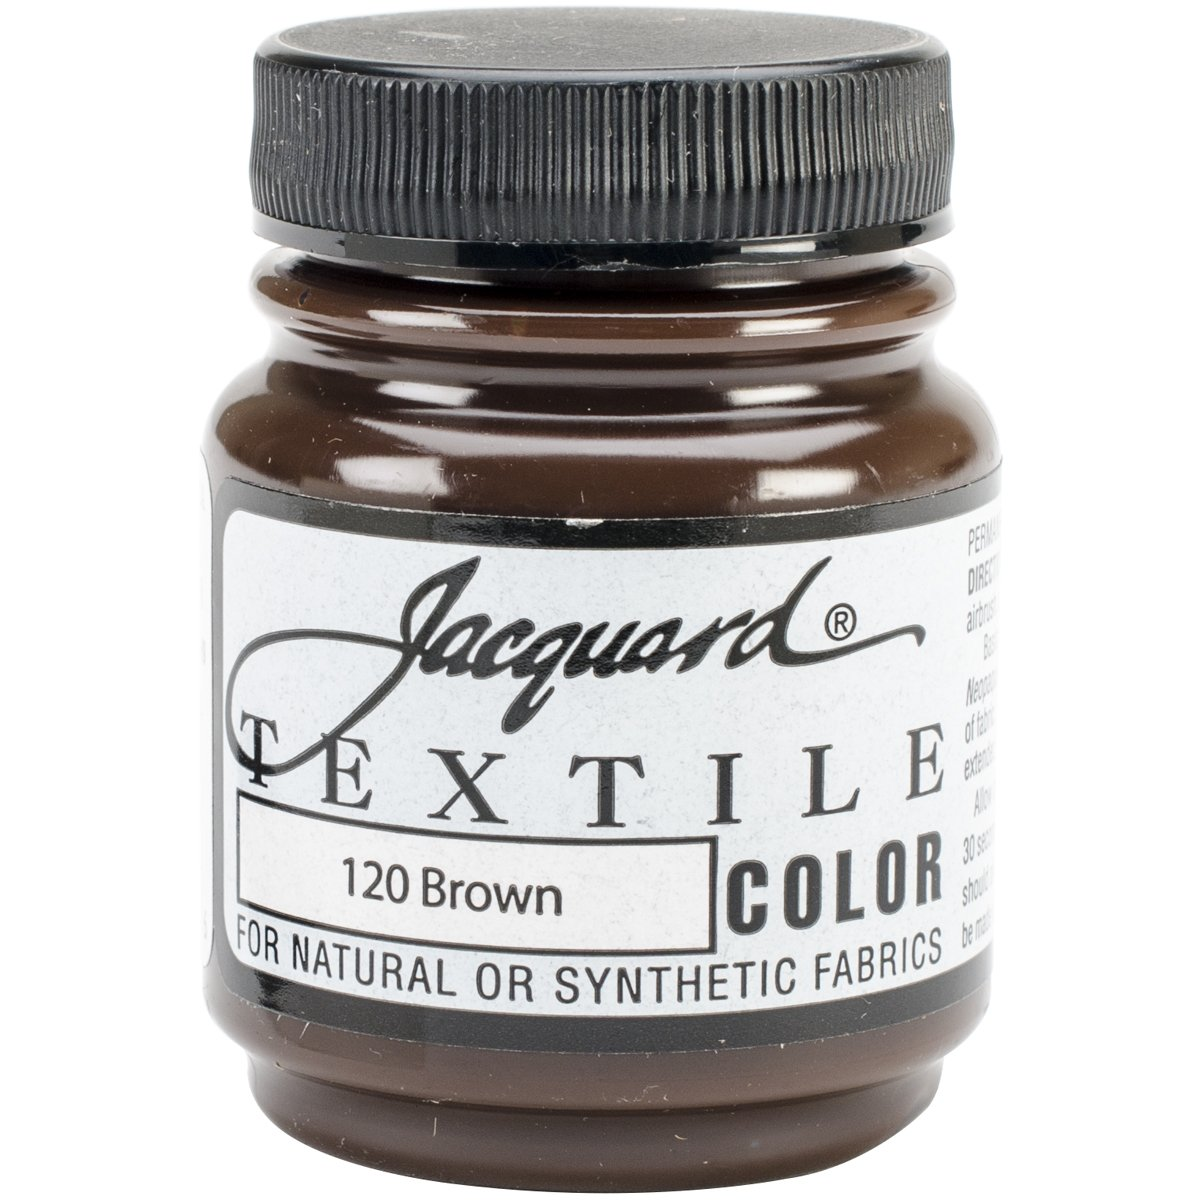 Jacquard Products Brown -Textile Color Paint, Acrylic, Multicolour TEXTILE-1120